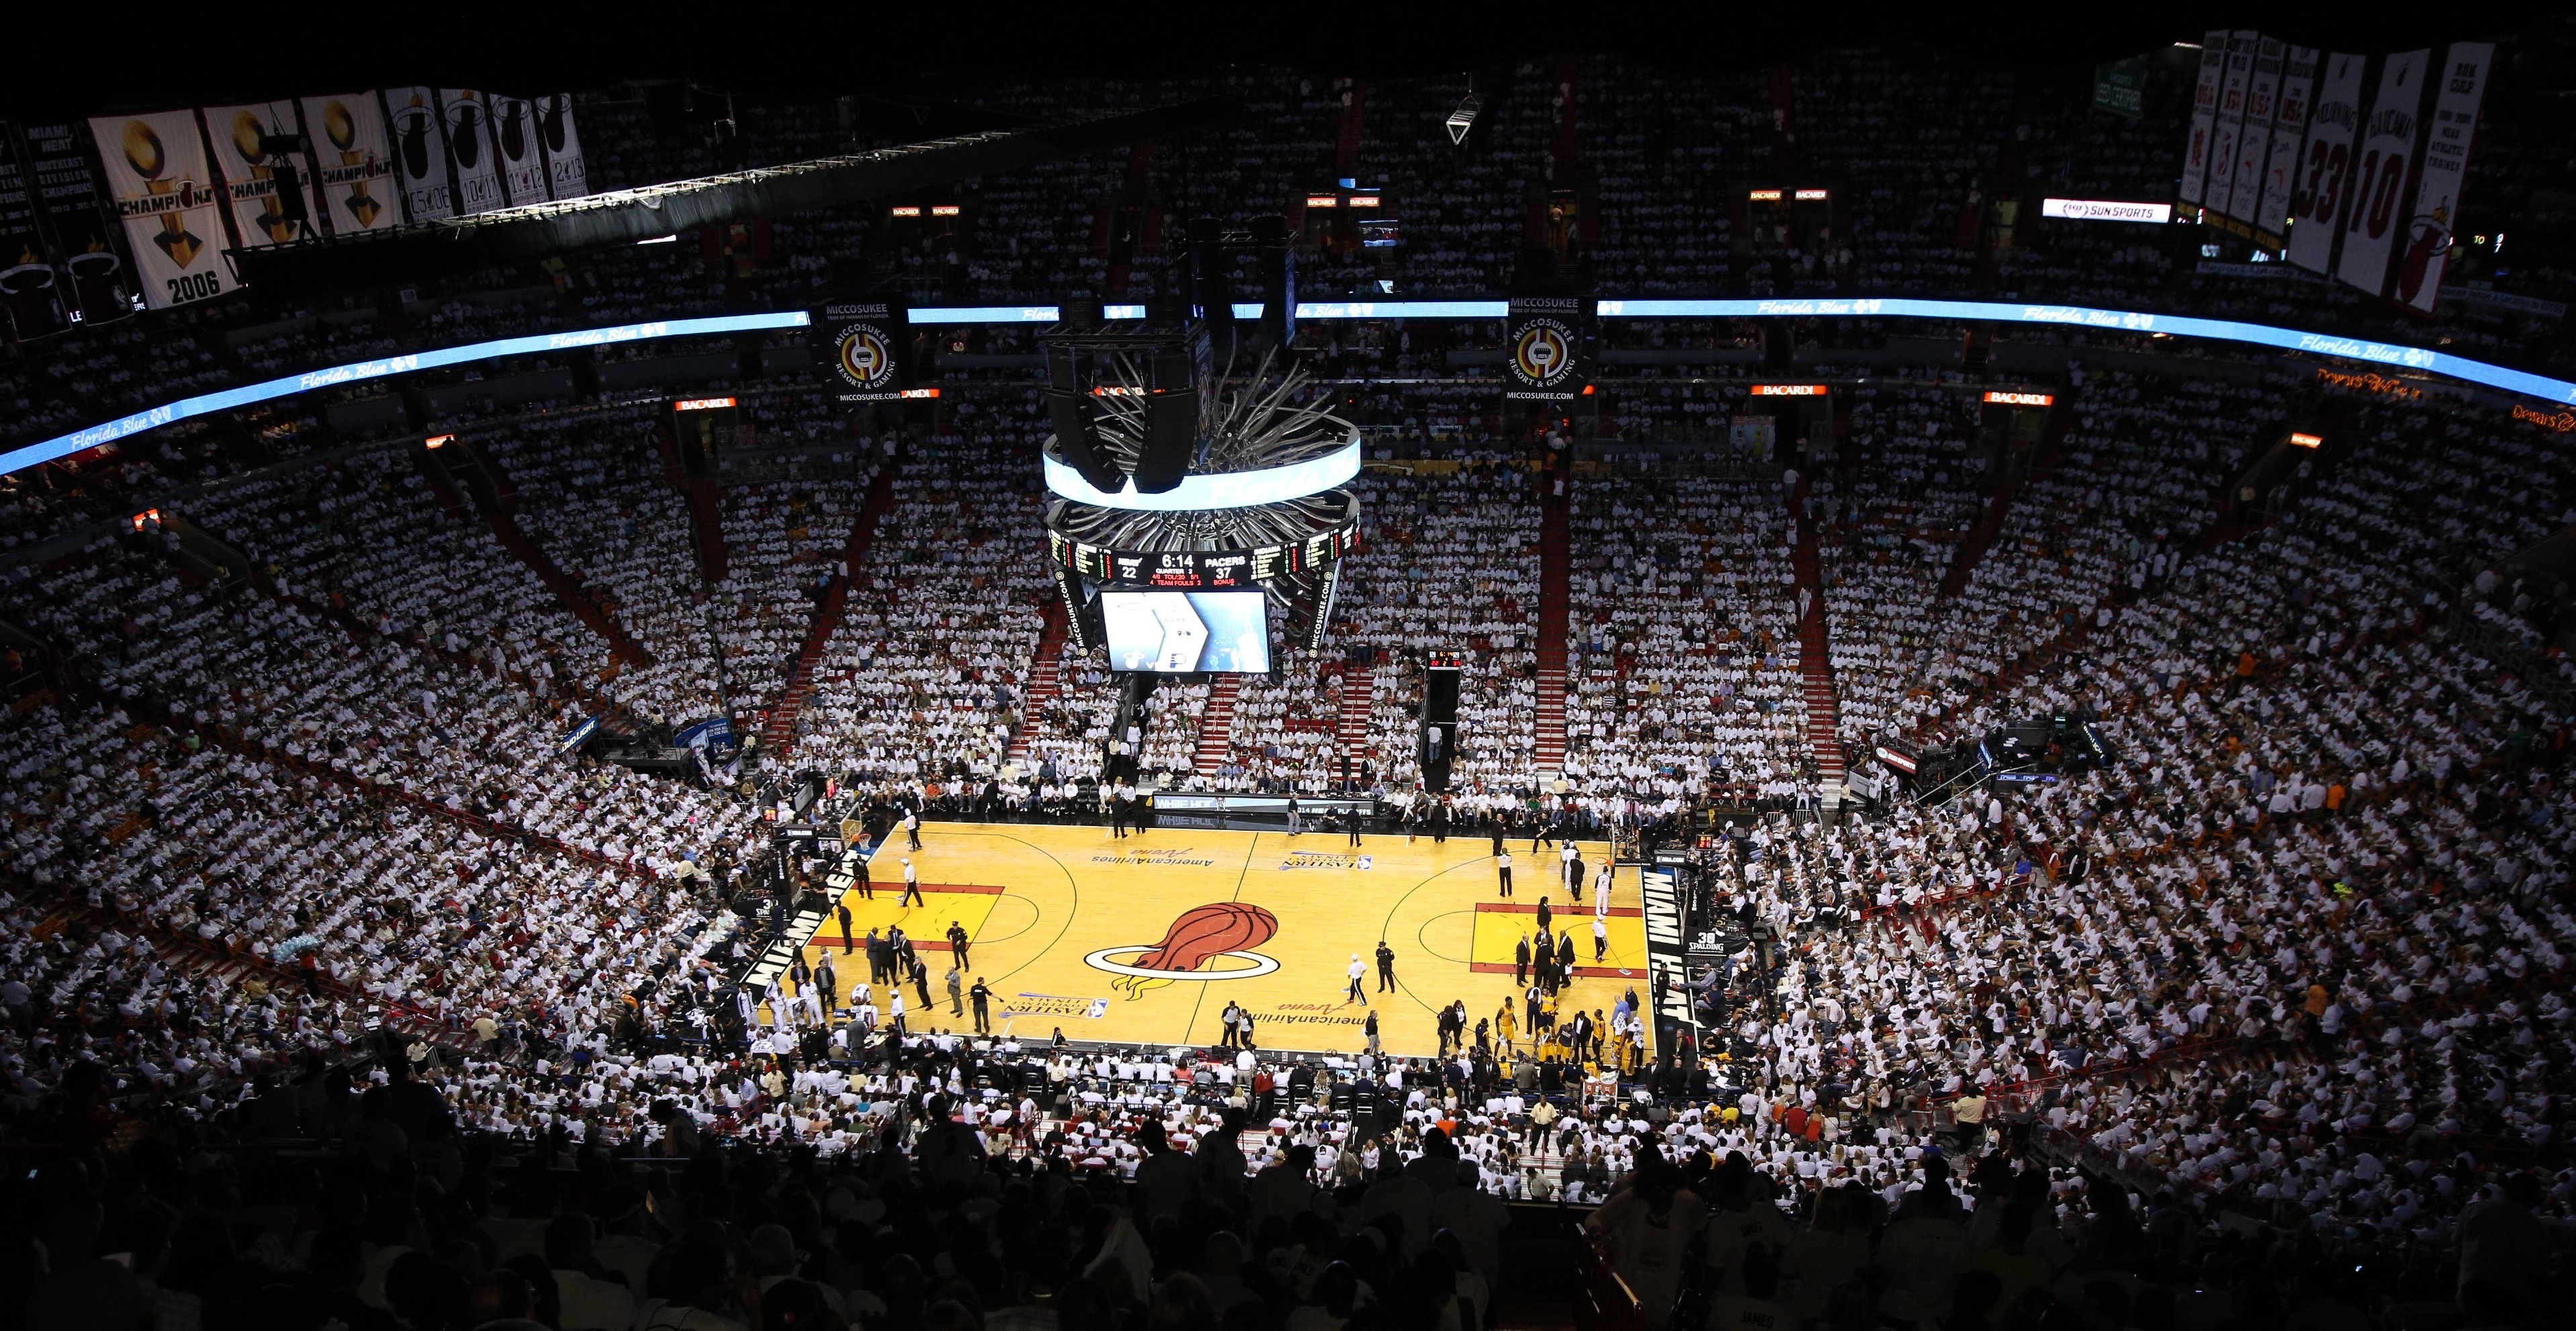 AmericanAirlines Arena Enhances Fan Experience and Increases Energy Efficiency with Eaton's Advanced LED Lighting and Controls System, Photo Credit David Alvarez/Miami HEAT.